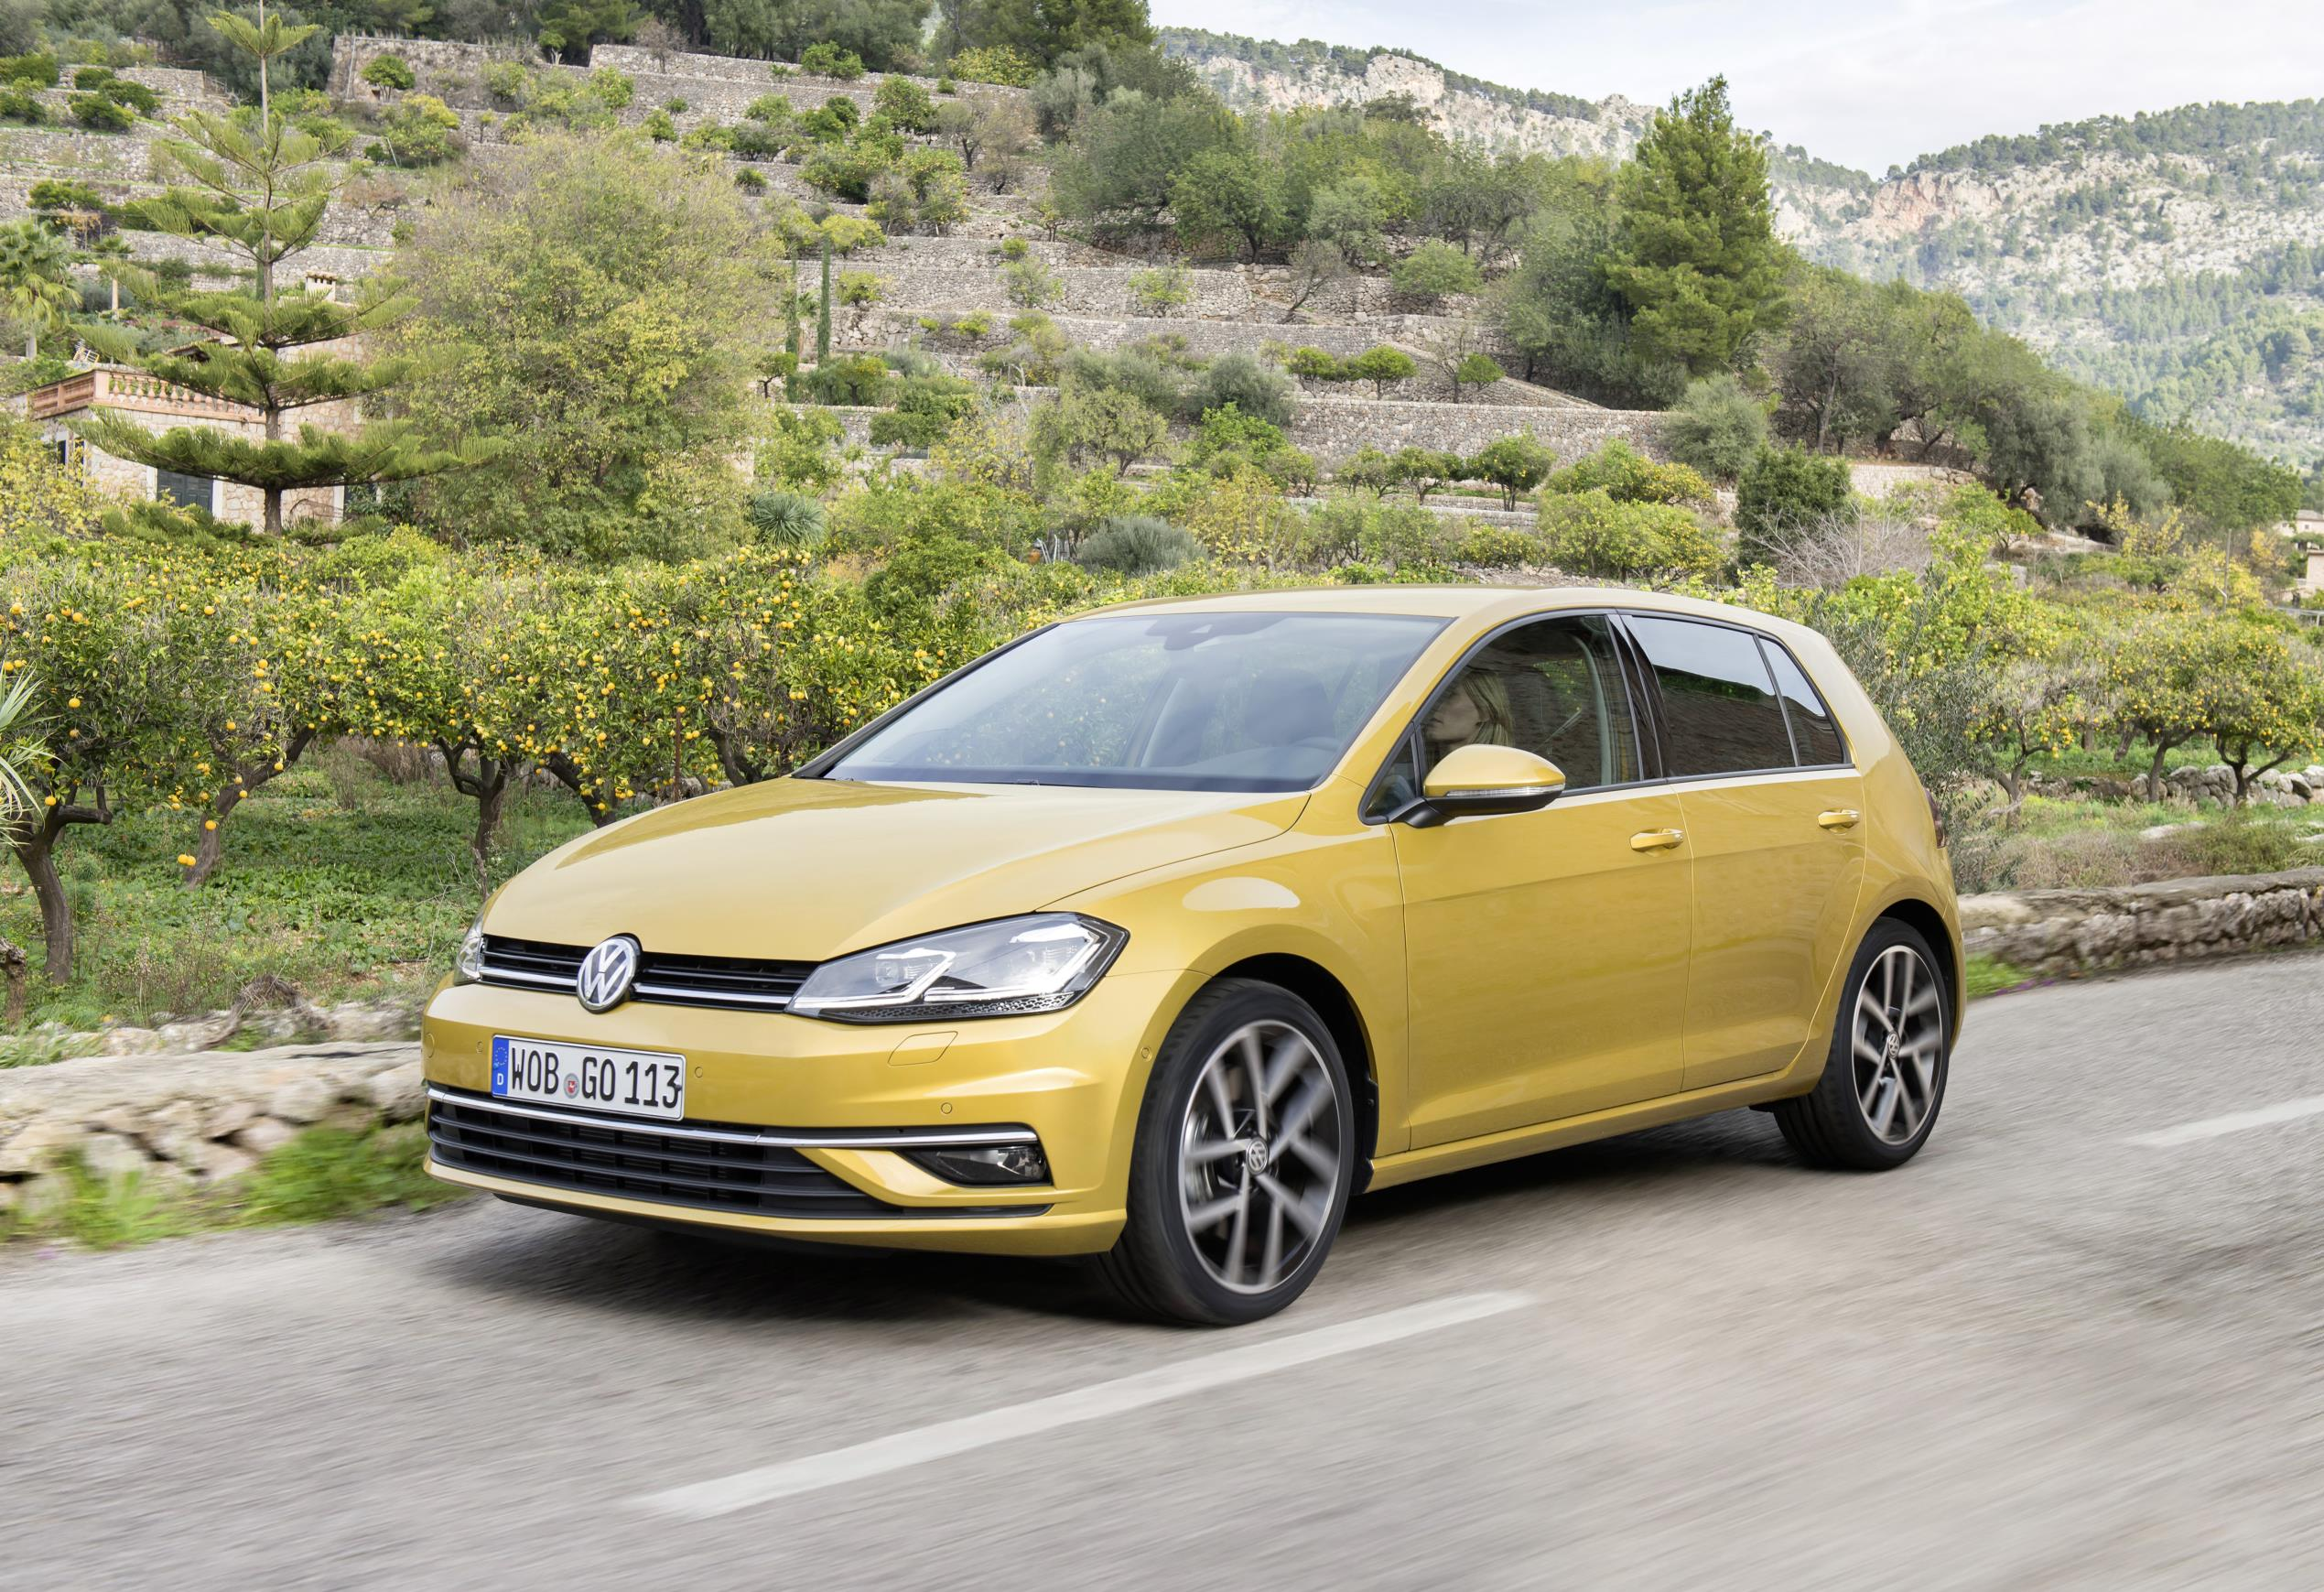 Orders Open for 2017 VW Golf